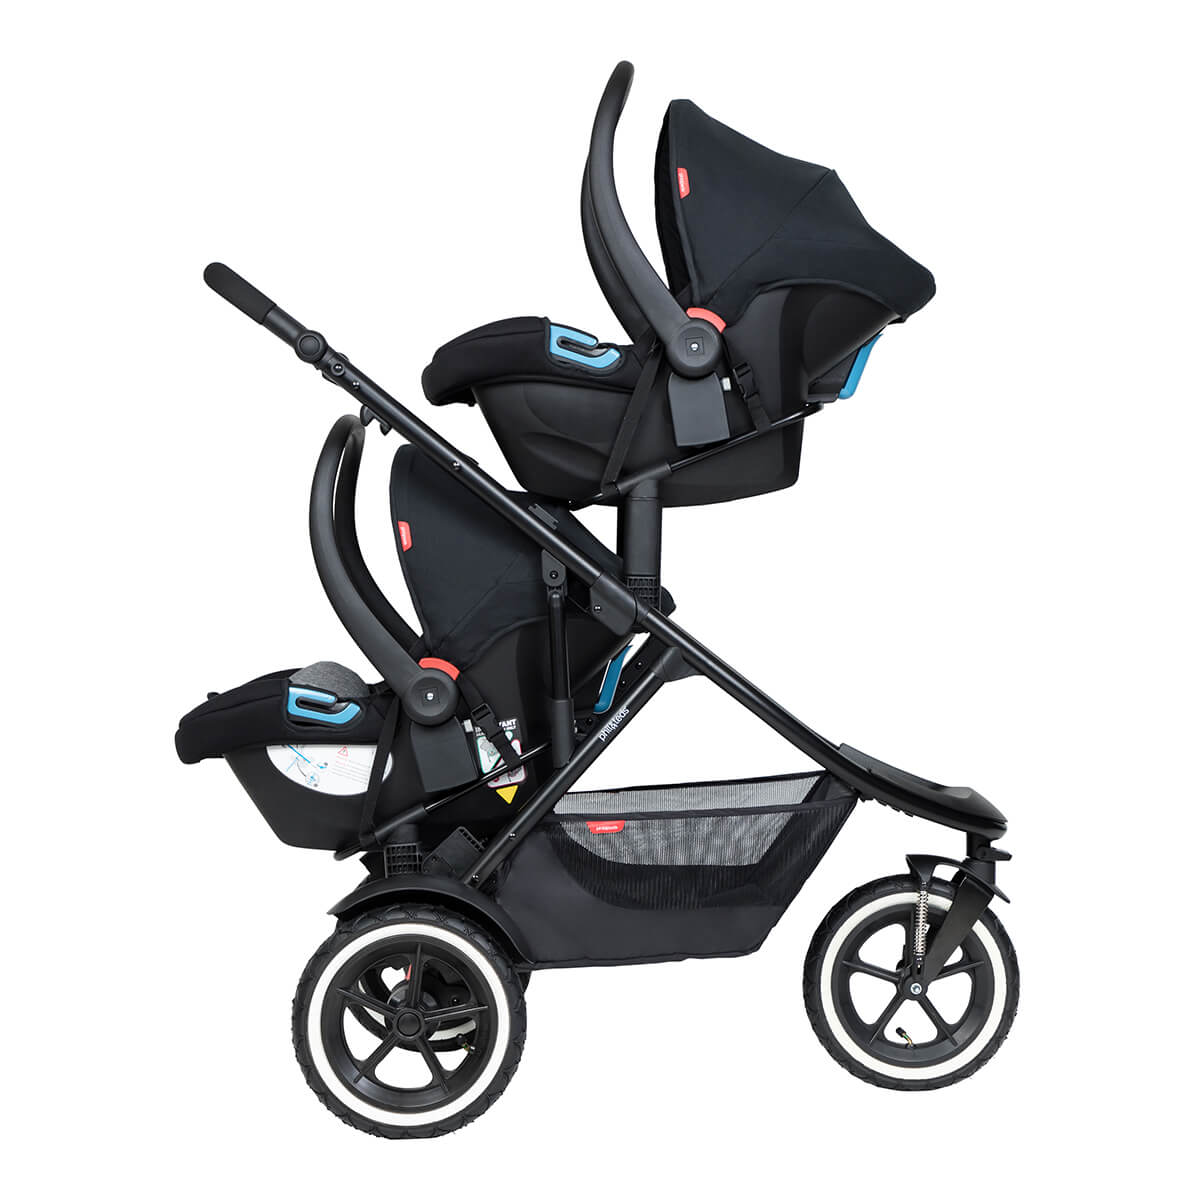 https://cdn.accentuate.io/4513463205984/19440099983544/philteds-sport-buggy-with-double-alpha-travel-system-v1626486611717.jpg?1200x1200